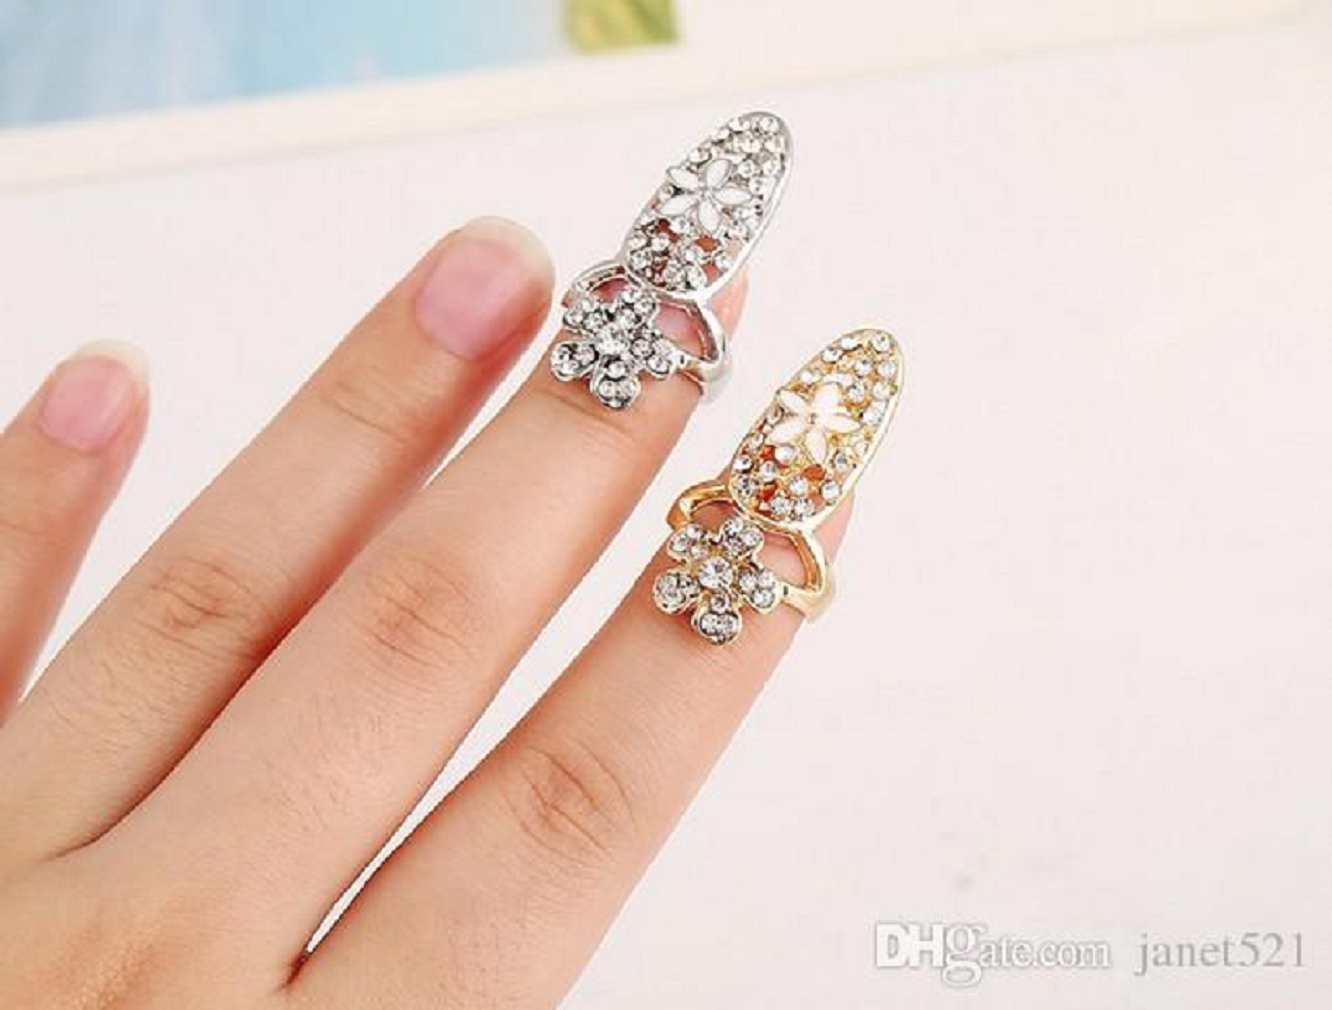 Nail ring bling Nail ring bling Rhinestone Decorated Gold Silver Tone Fingernail Rings with Flower Pattern